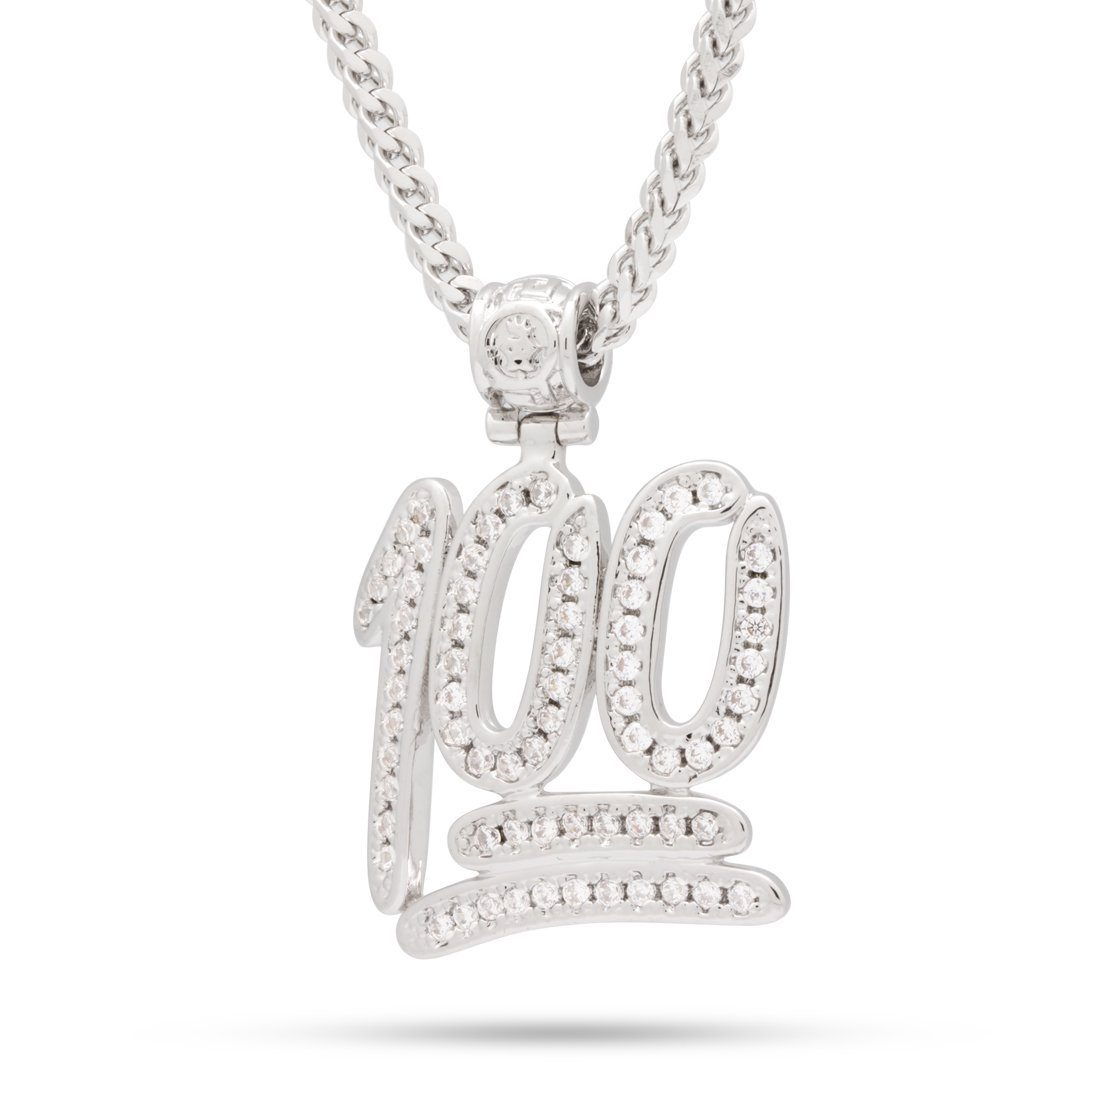 The White Gold 100 Emoji Necklace